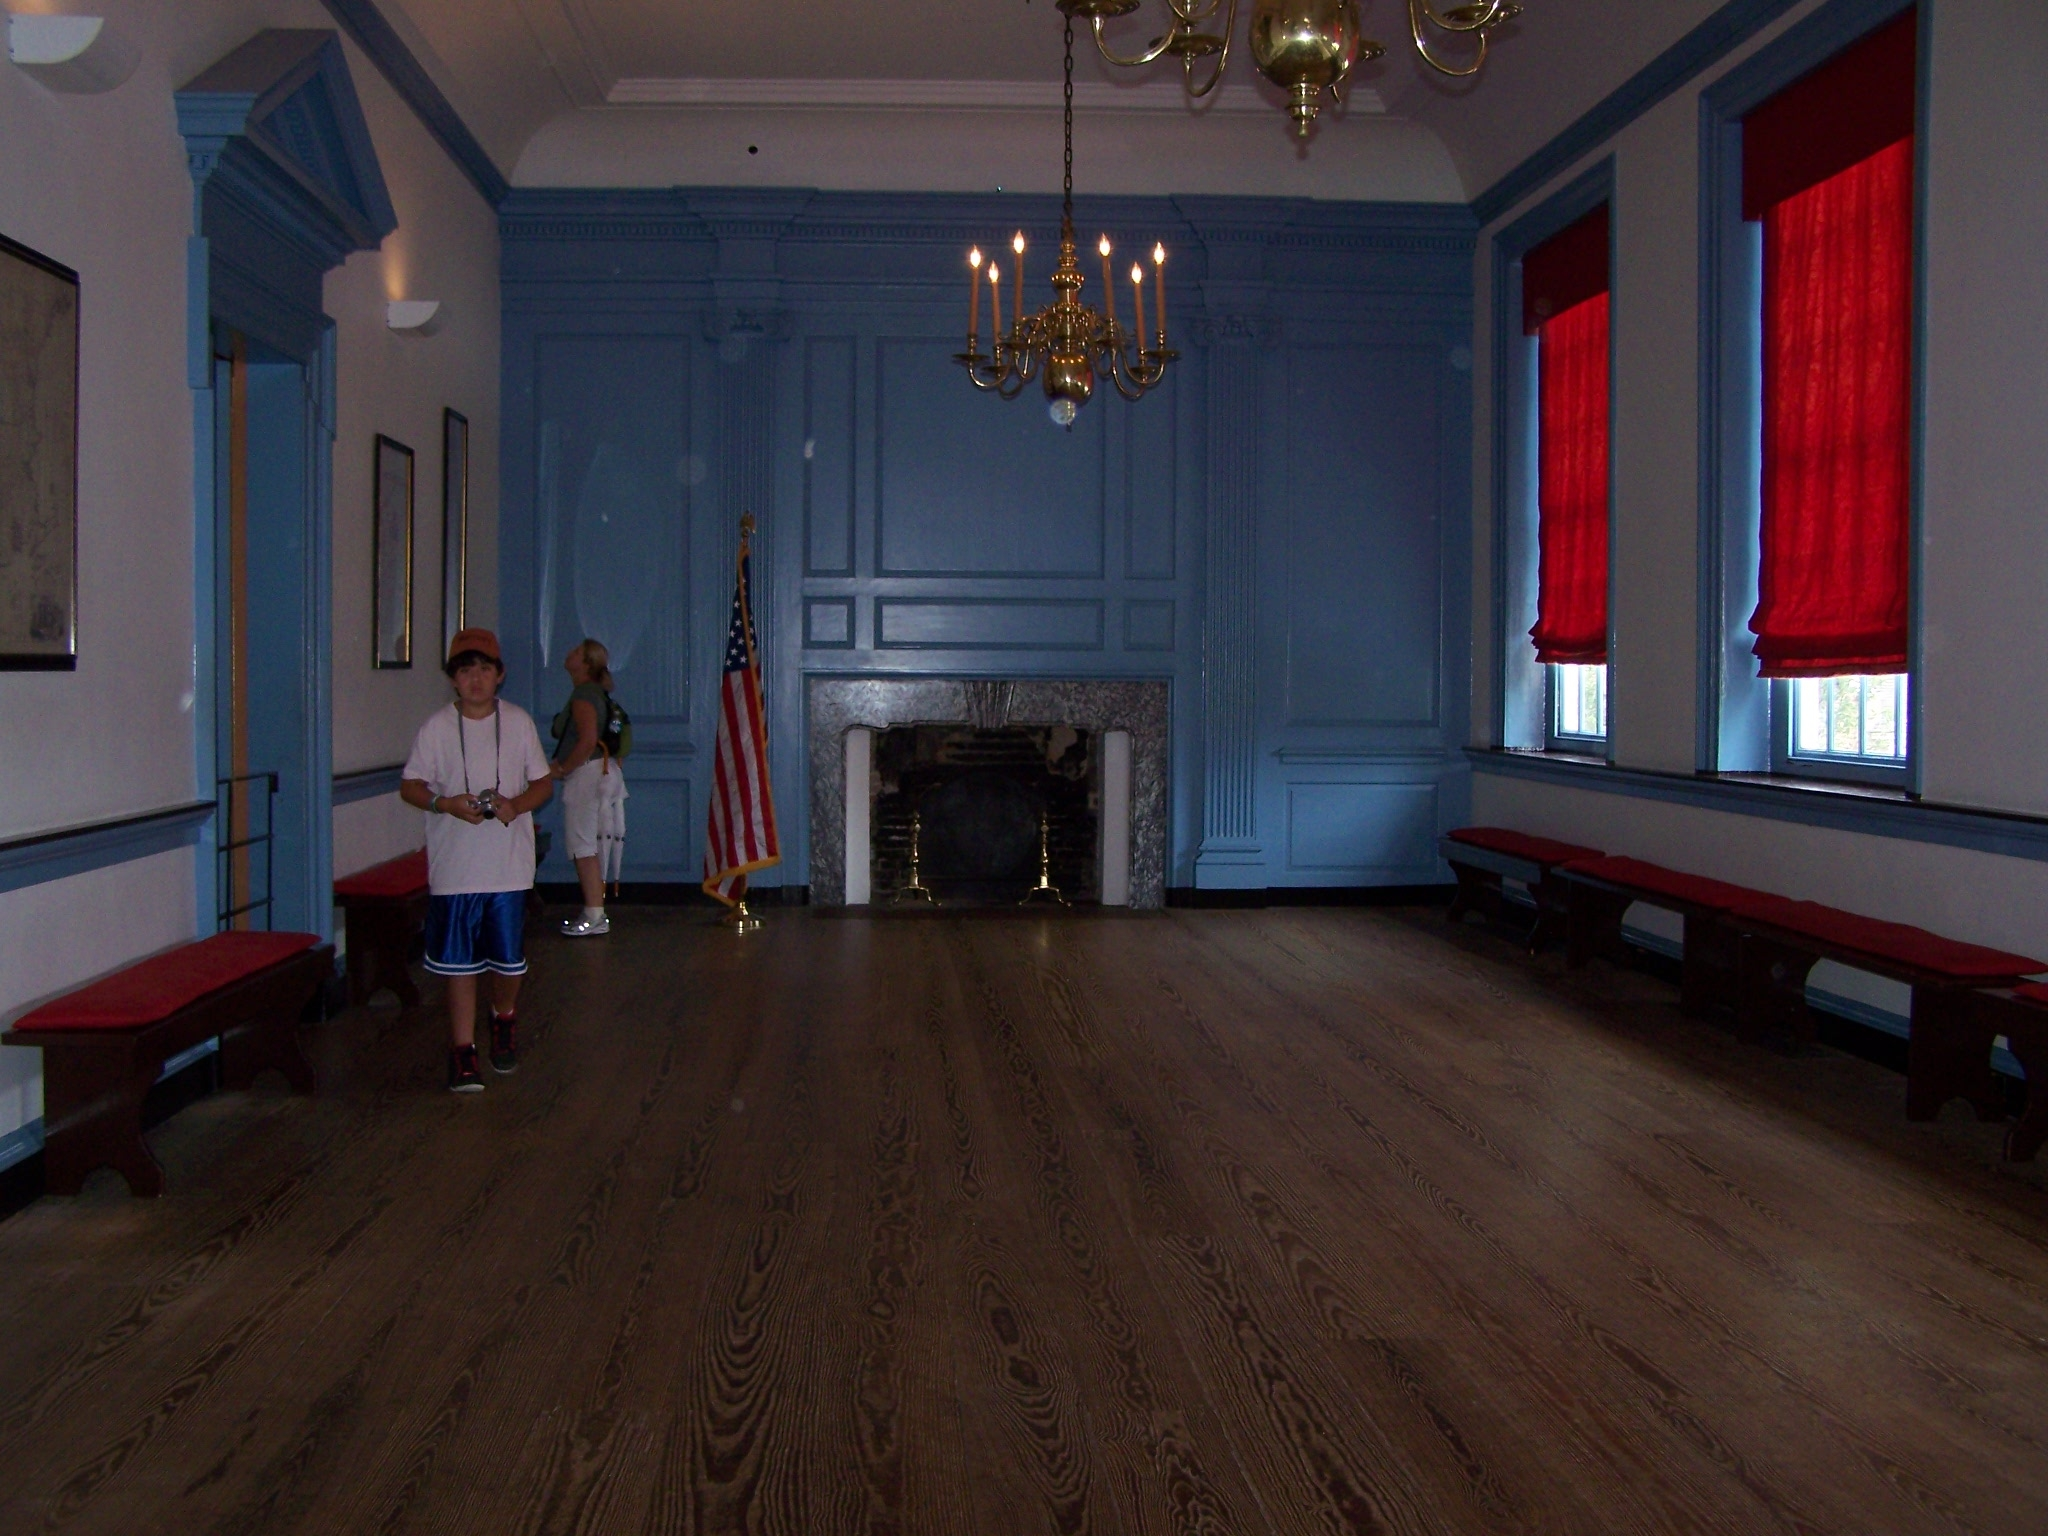 The Long Gallery on the second floor of Independence Hall